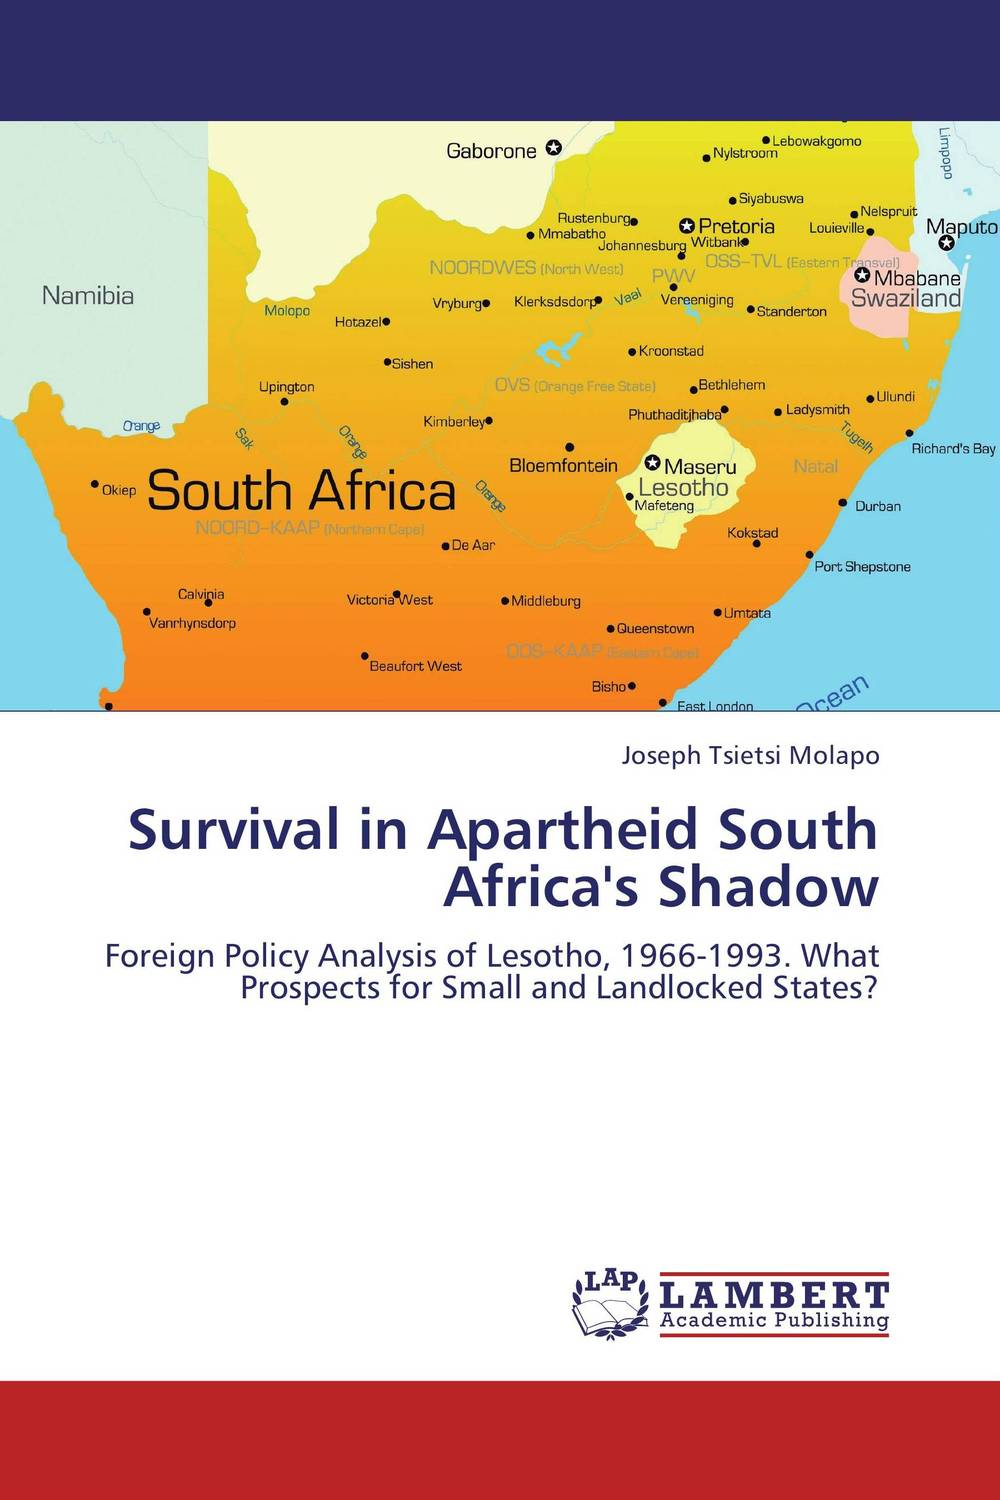 Survival in Apartheid South Africa's Shadow